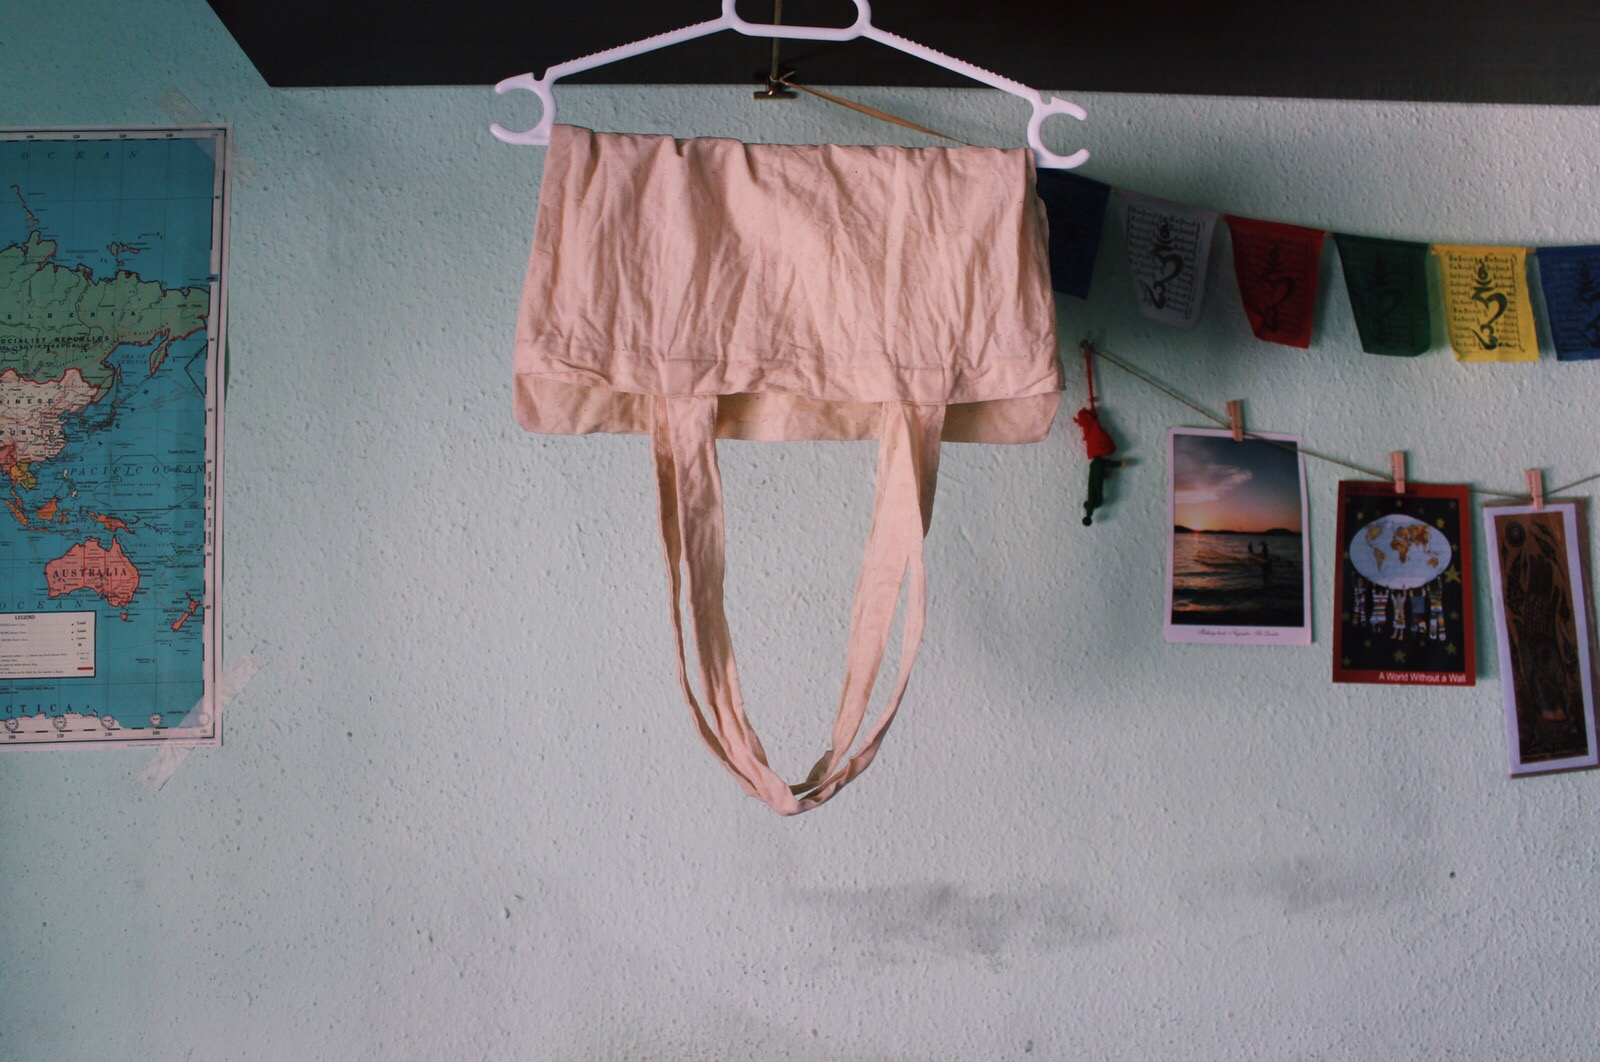 Laundry moments - Urban arts by You and I